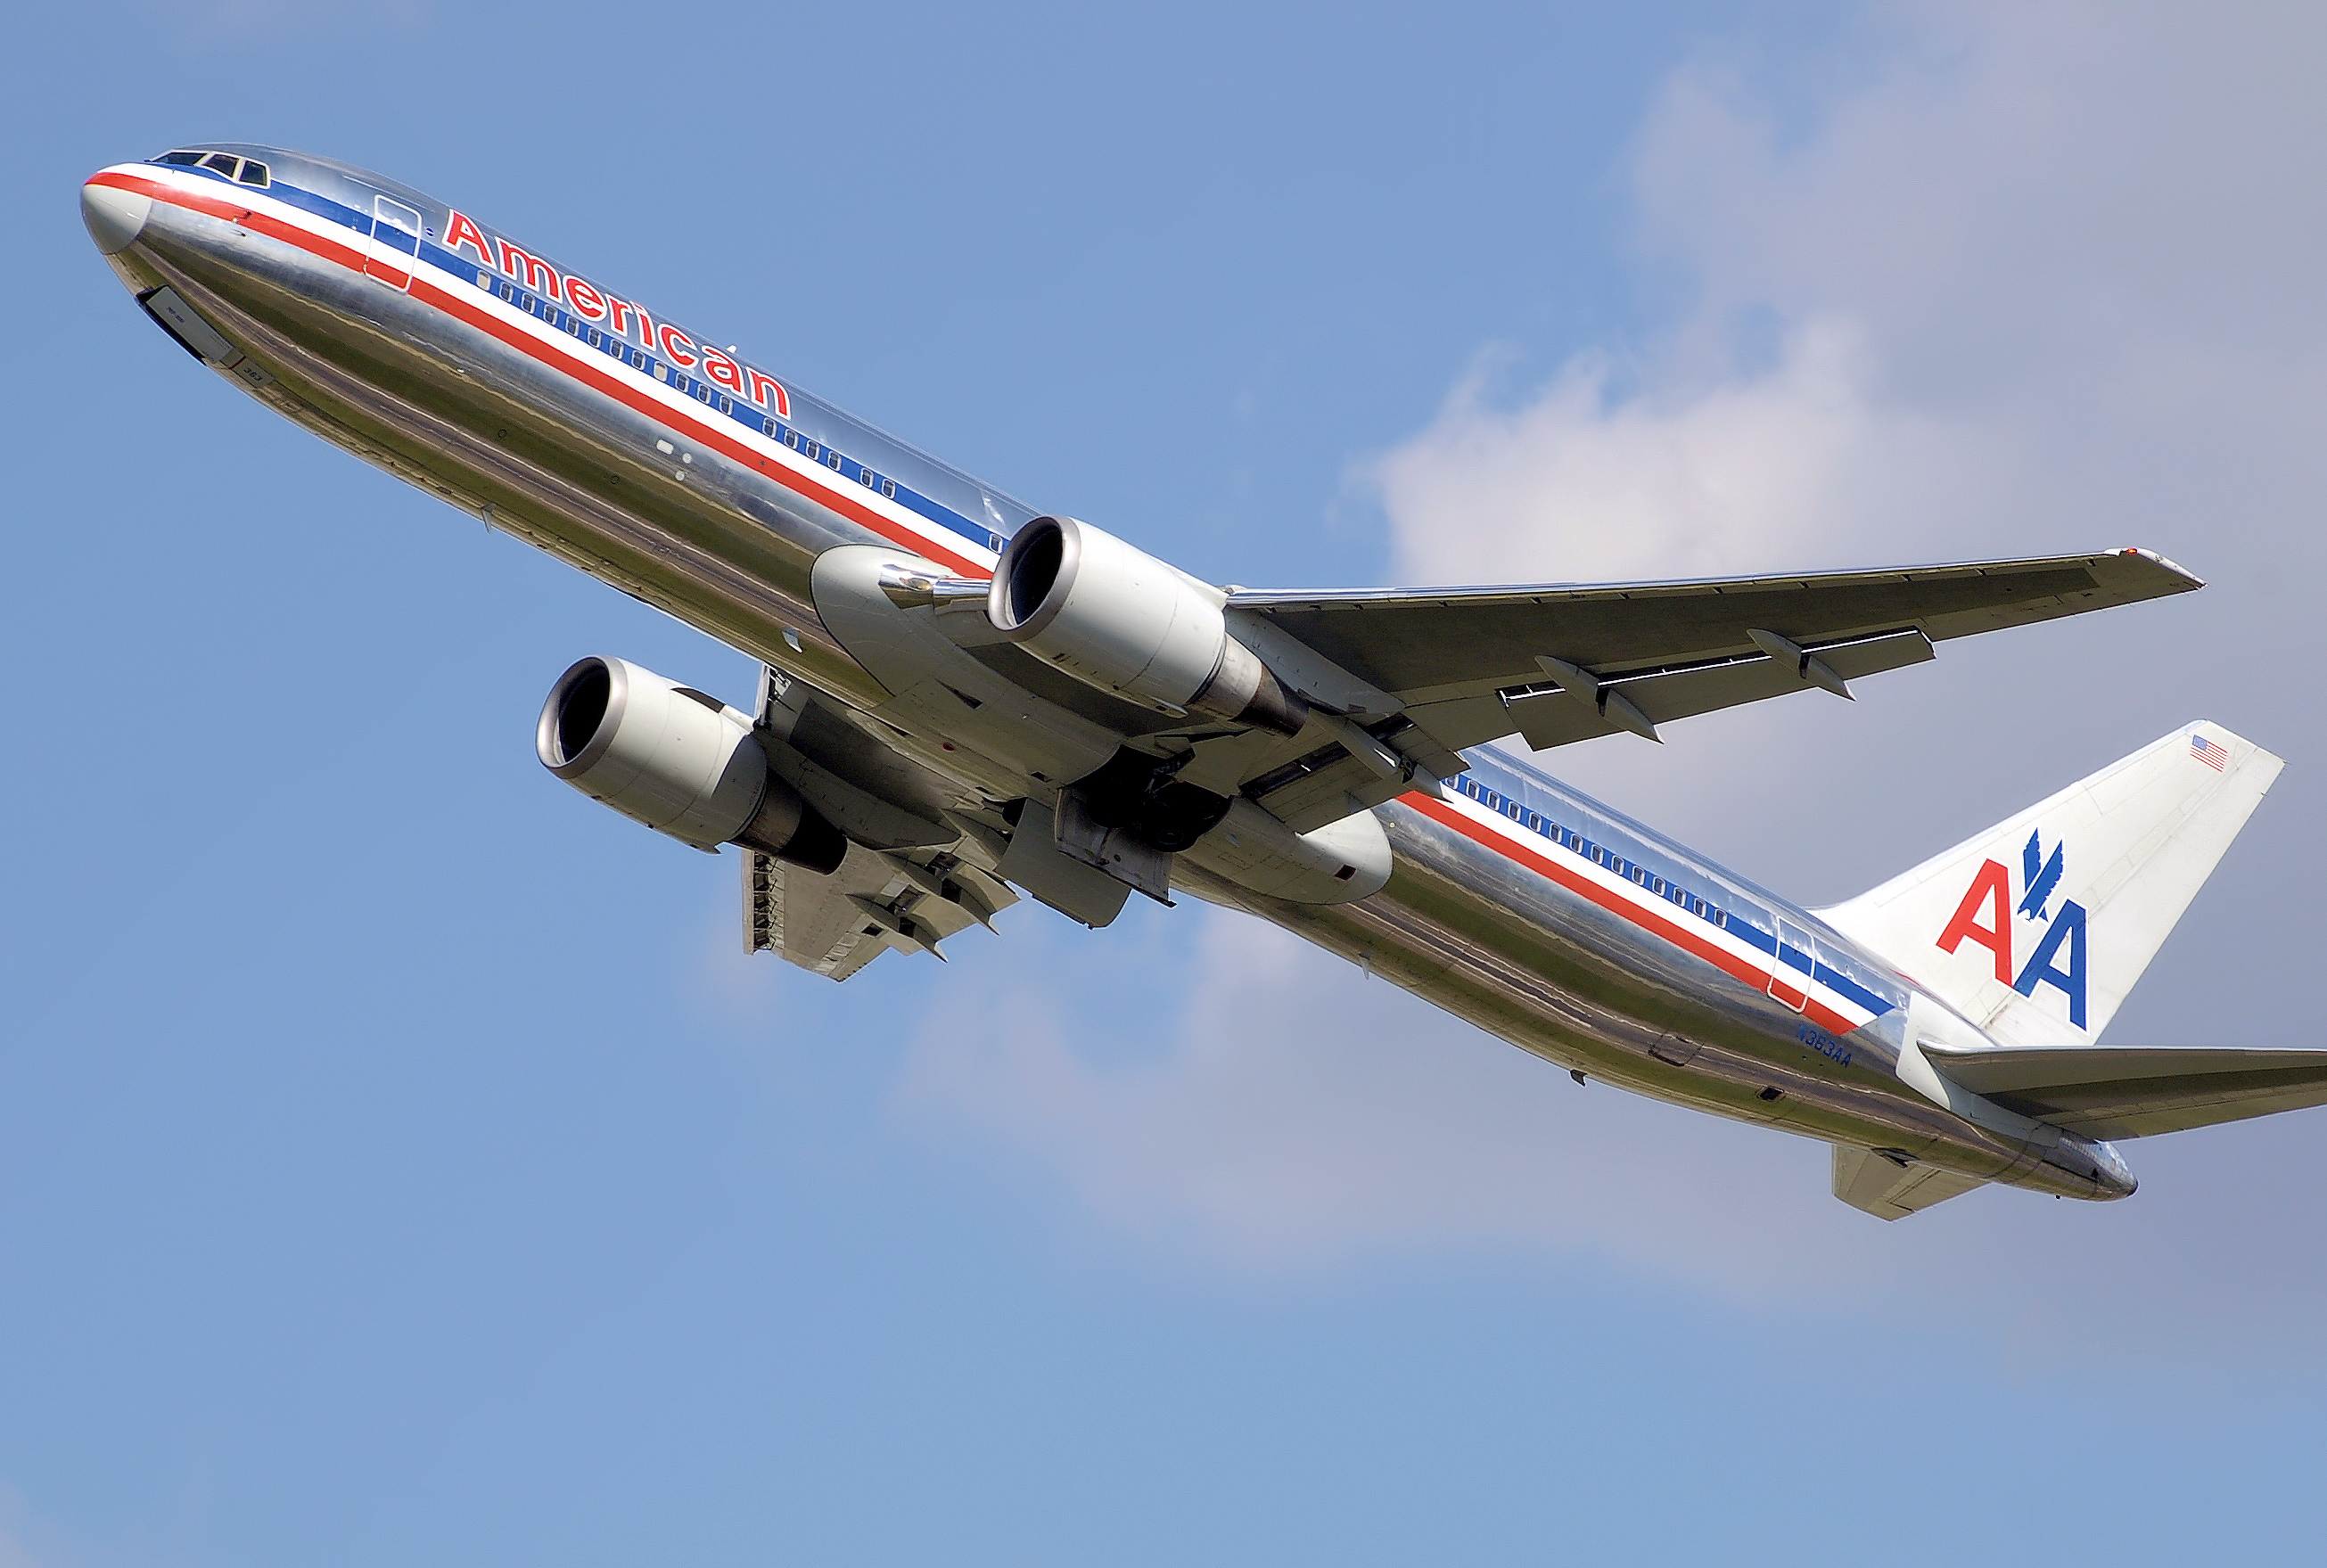 With Planes on Ground, Accusations Fly at American Airlines